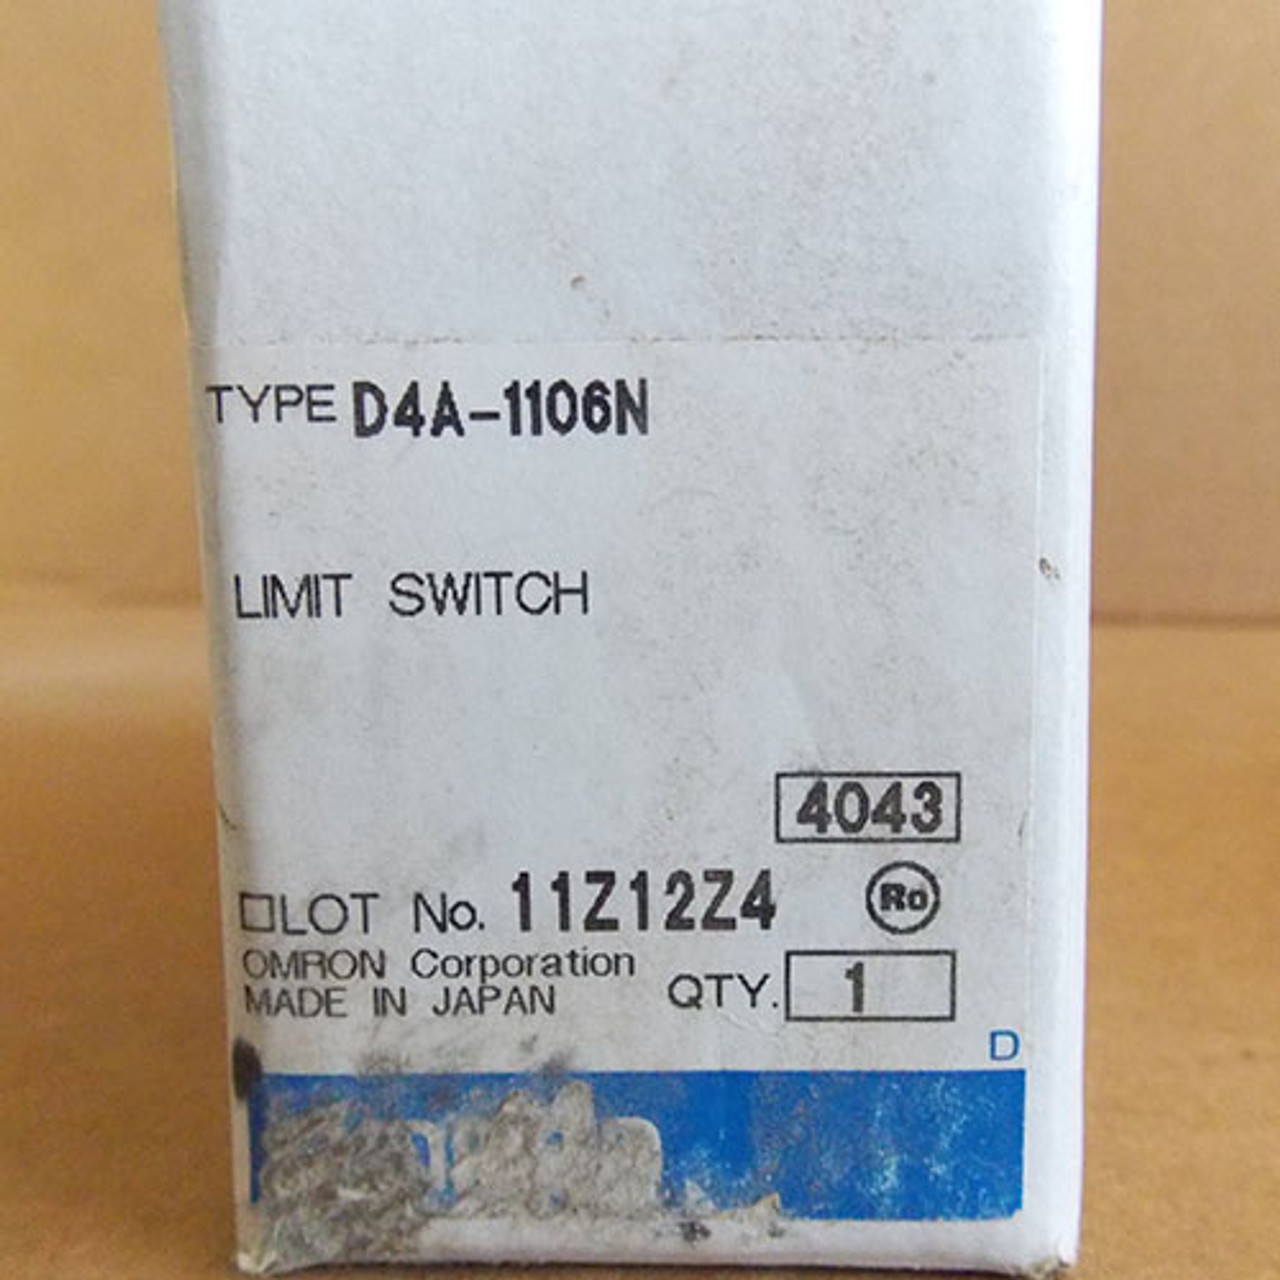 Omron D4A-1106N General Purpose Limit Switch, Side Plunger, Standard Type, 1/2-14 NPT Conduit Size, 1P, Double Throw, Double Break - New